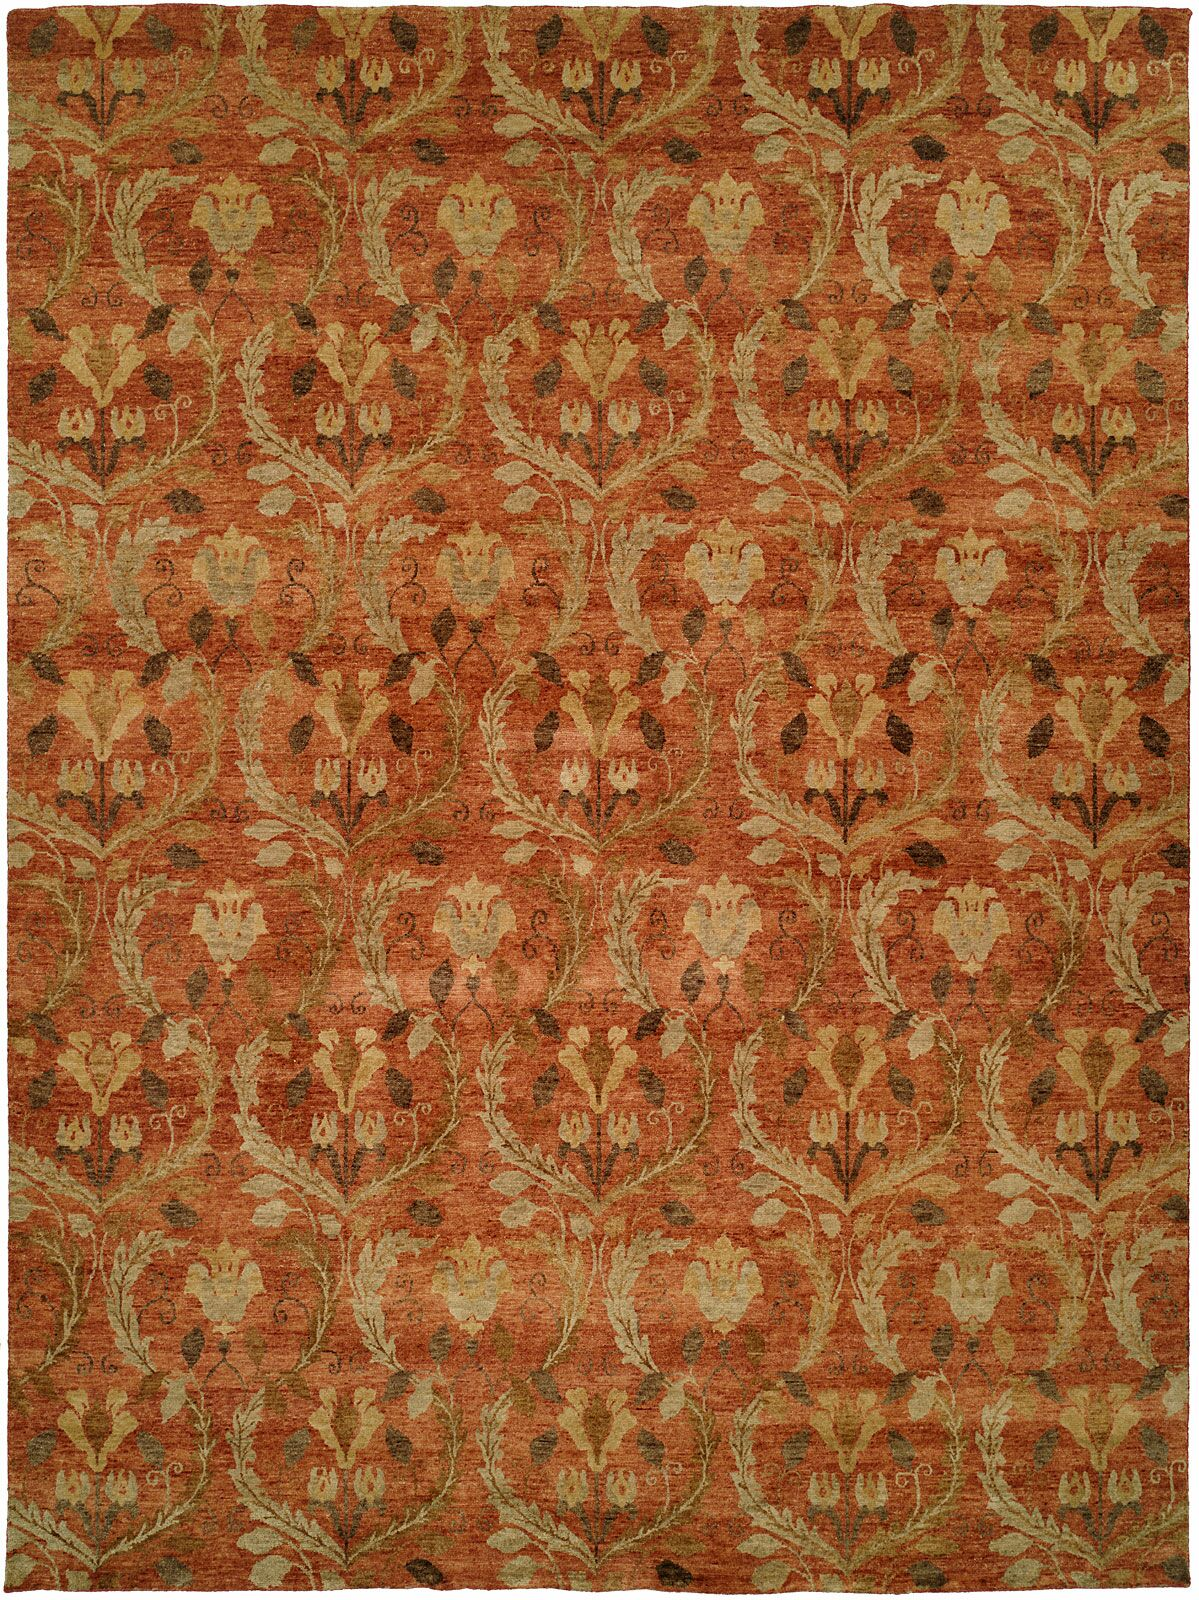 Keelung Hand-Knotted Rust Area Rug Rug Size: Rectangle 3' x 5'